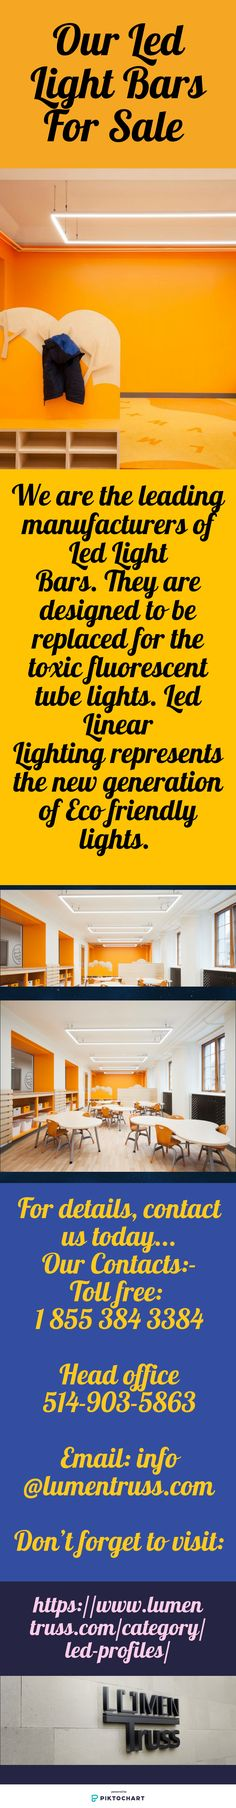 We are the leading manufacturers of Led Light Bars. They are designed to be replaced for the toxic fluorescent tube lights. Led Linear Lighting represents the new generation of Eco friendly lights. To get Our Led Light Bars For Sale , contact us on 1-855-384-3384 and visit our website: https://www.lumentruss.com/category/lens/